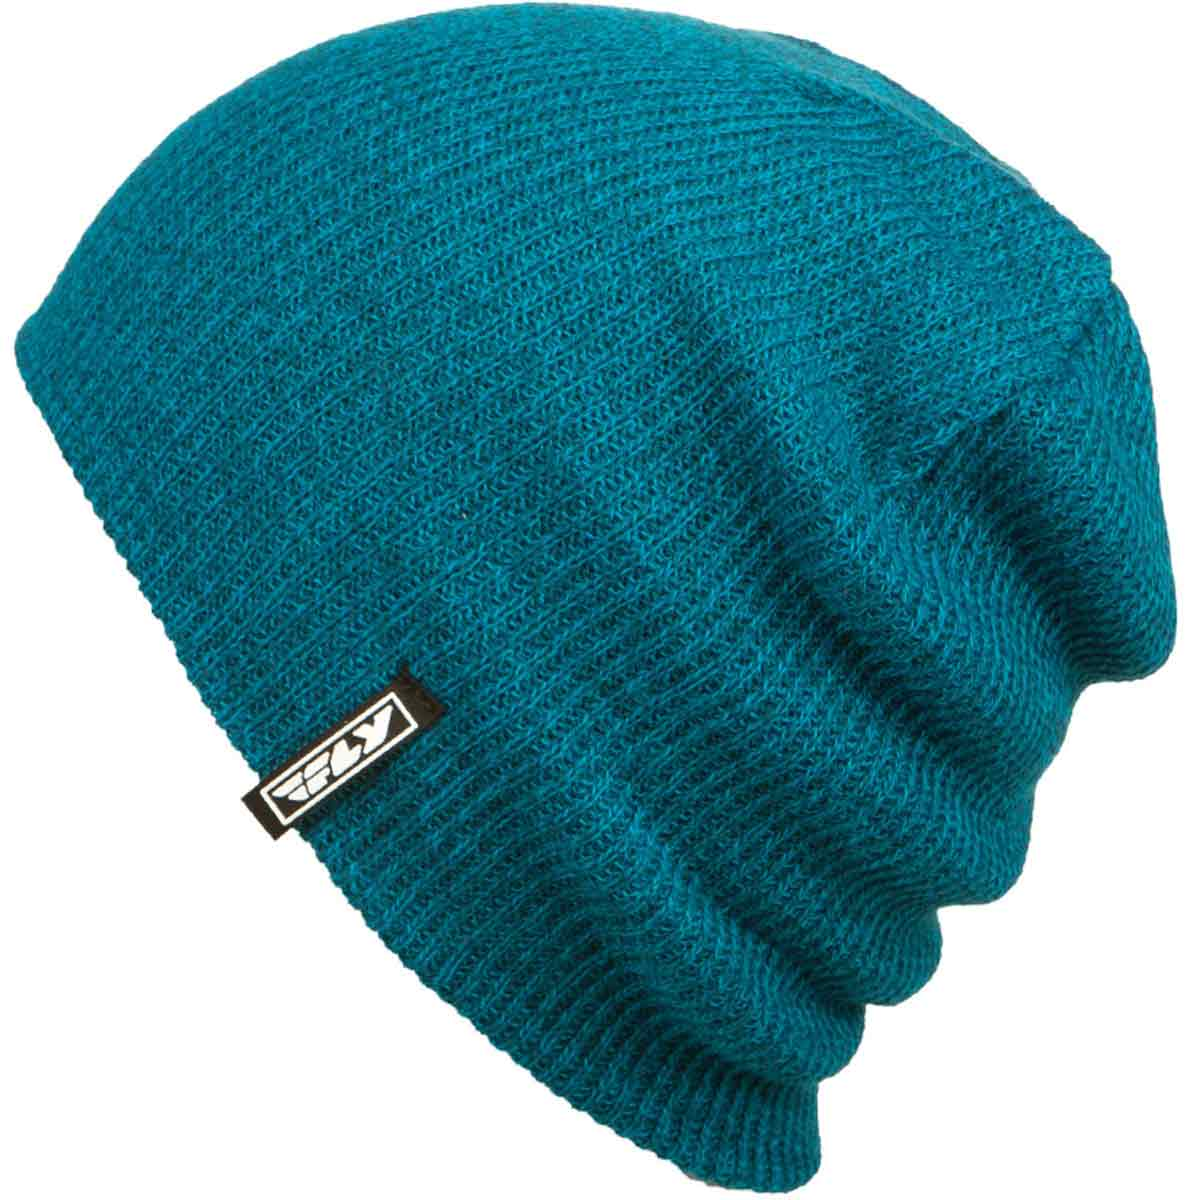 Fly Racing Supy-X Men's Beanie Hats-351